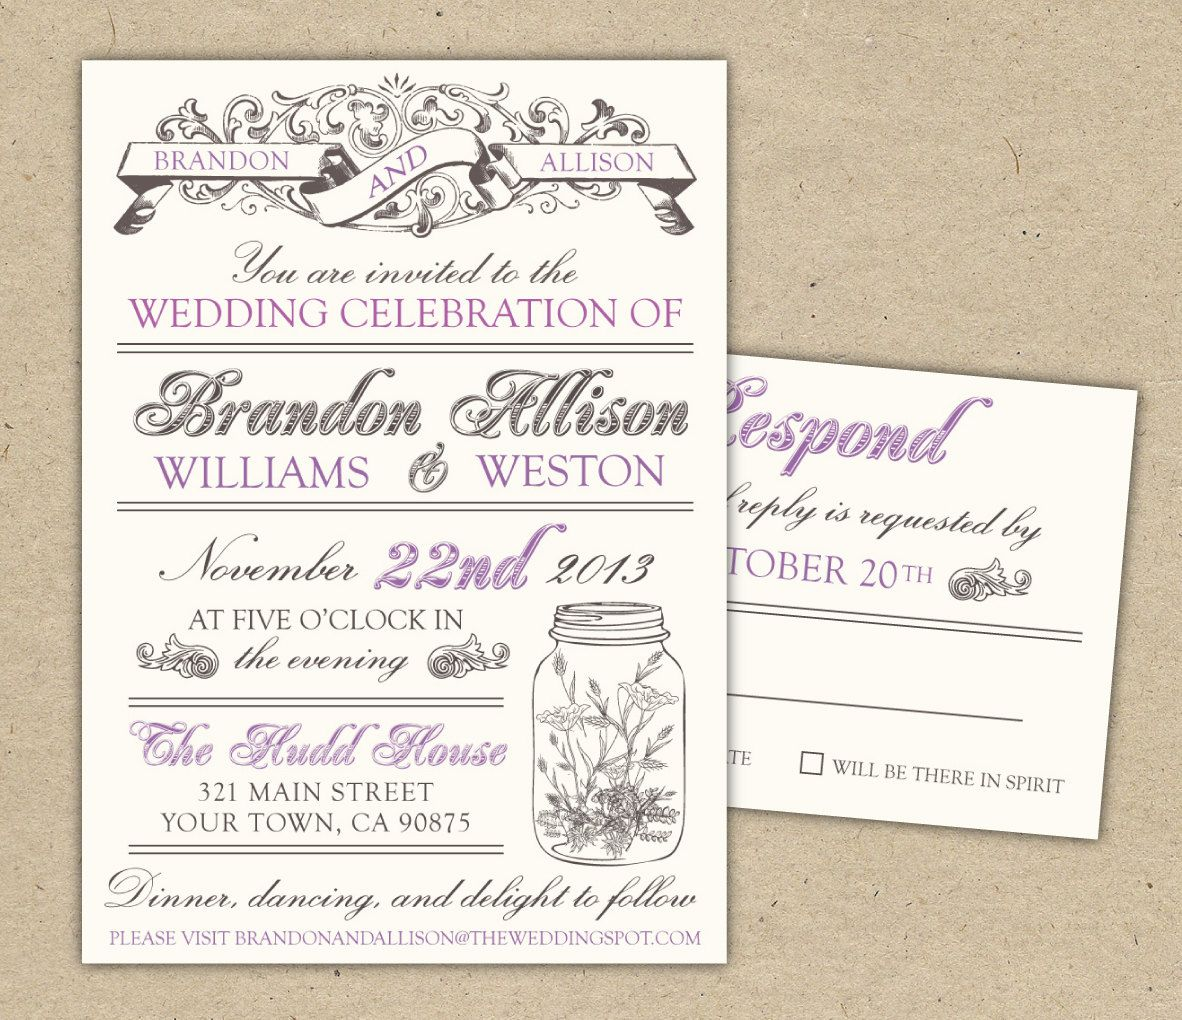 Free Templates For Invitations Free Printable Vintage Wedding - Wedding invitation templates: wedding anniversary invitation templates